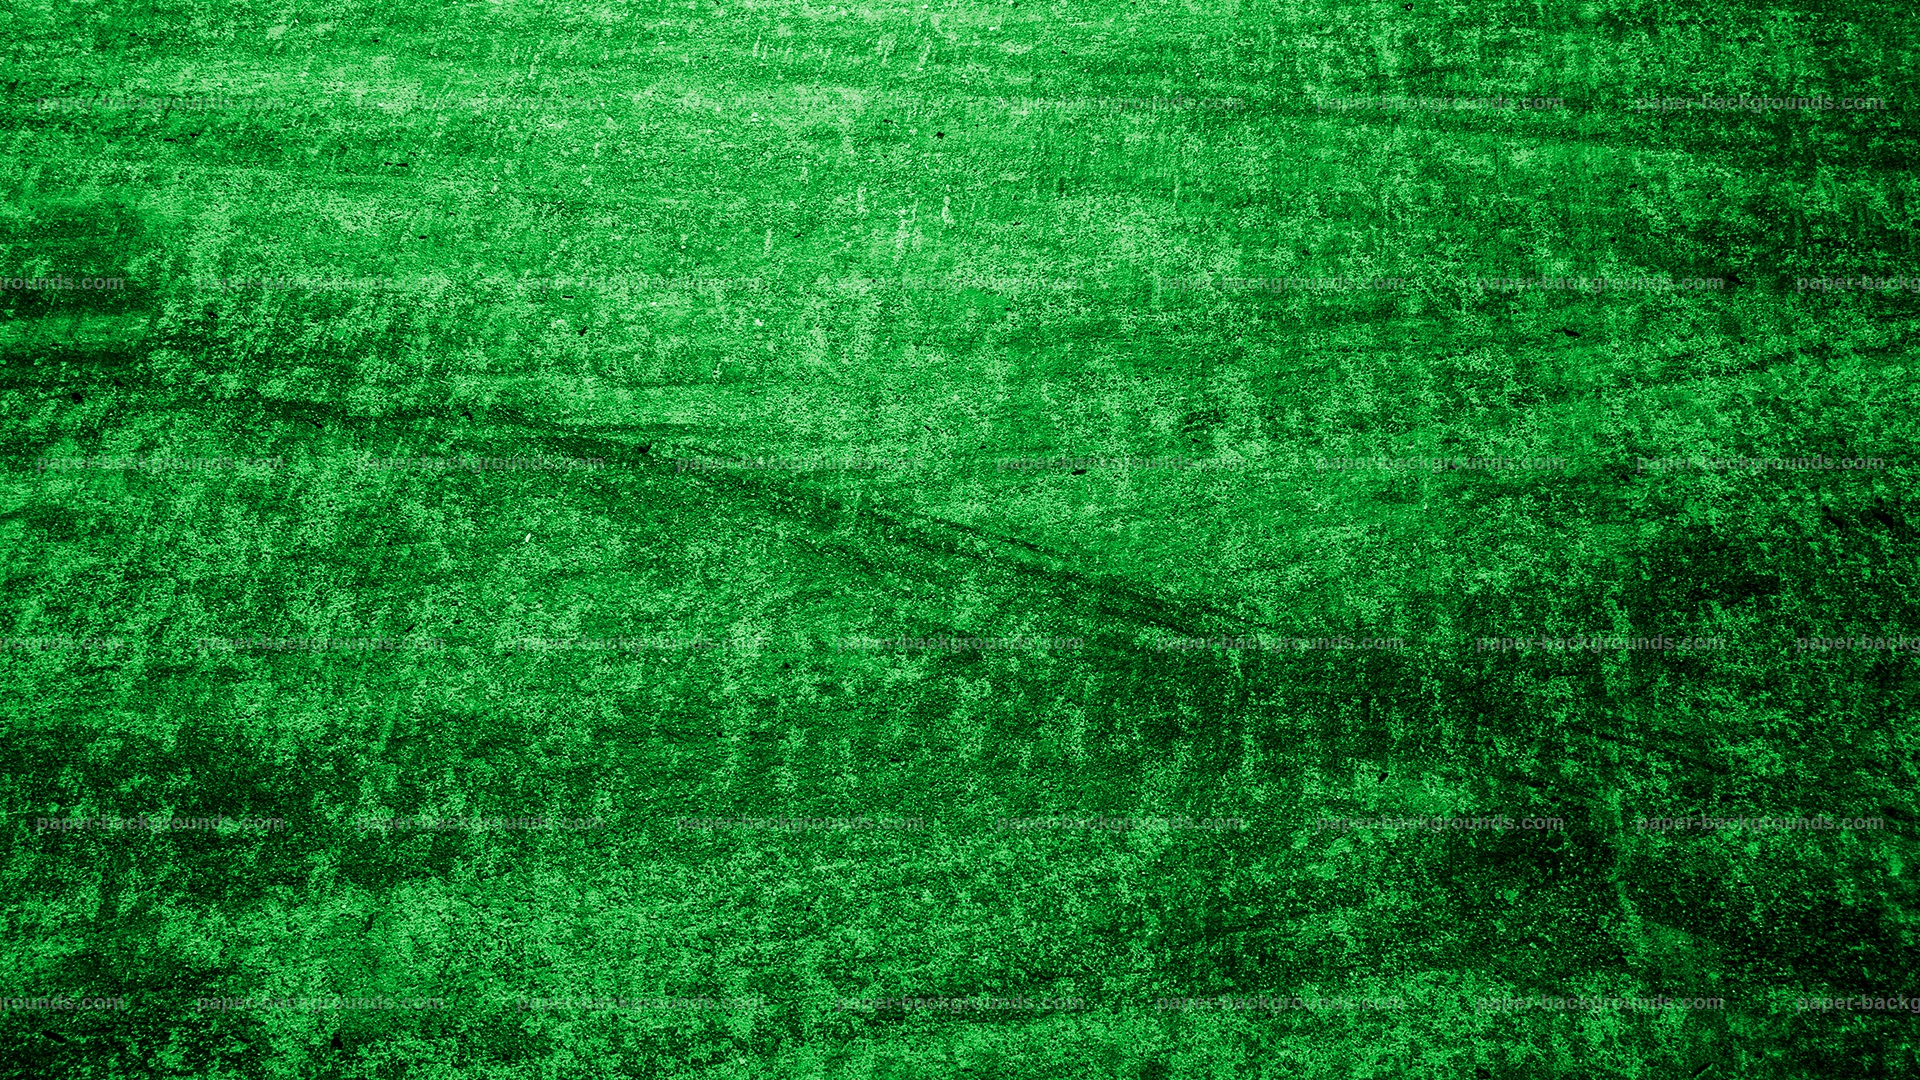 Green Grunge Concrete Texture HD